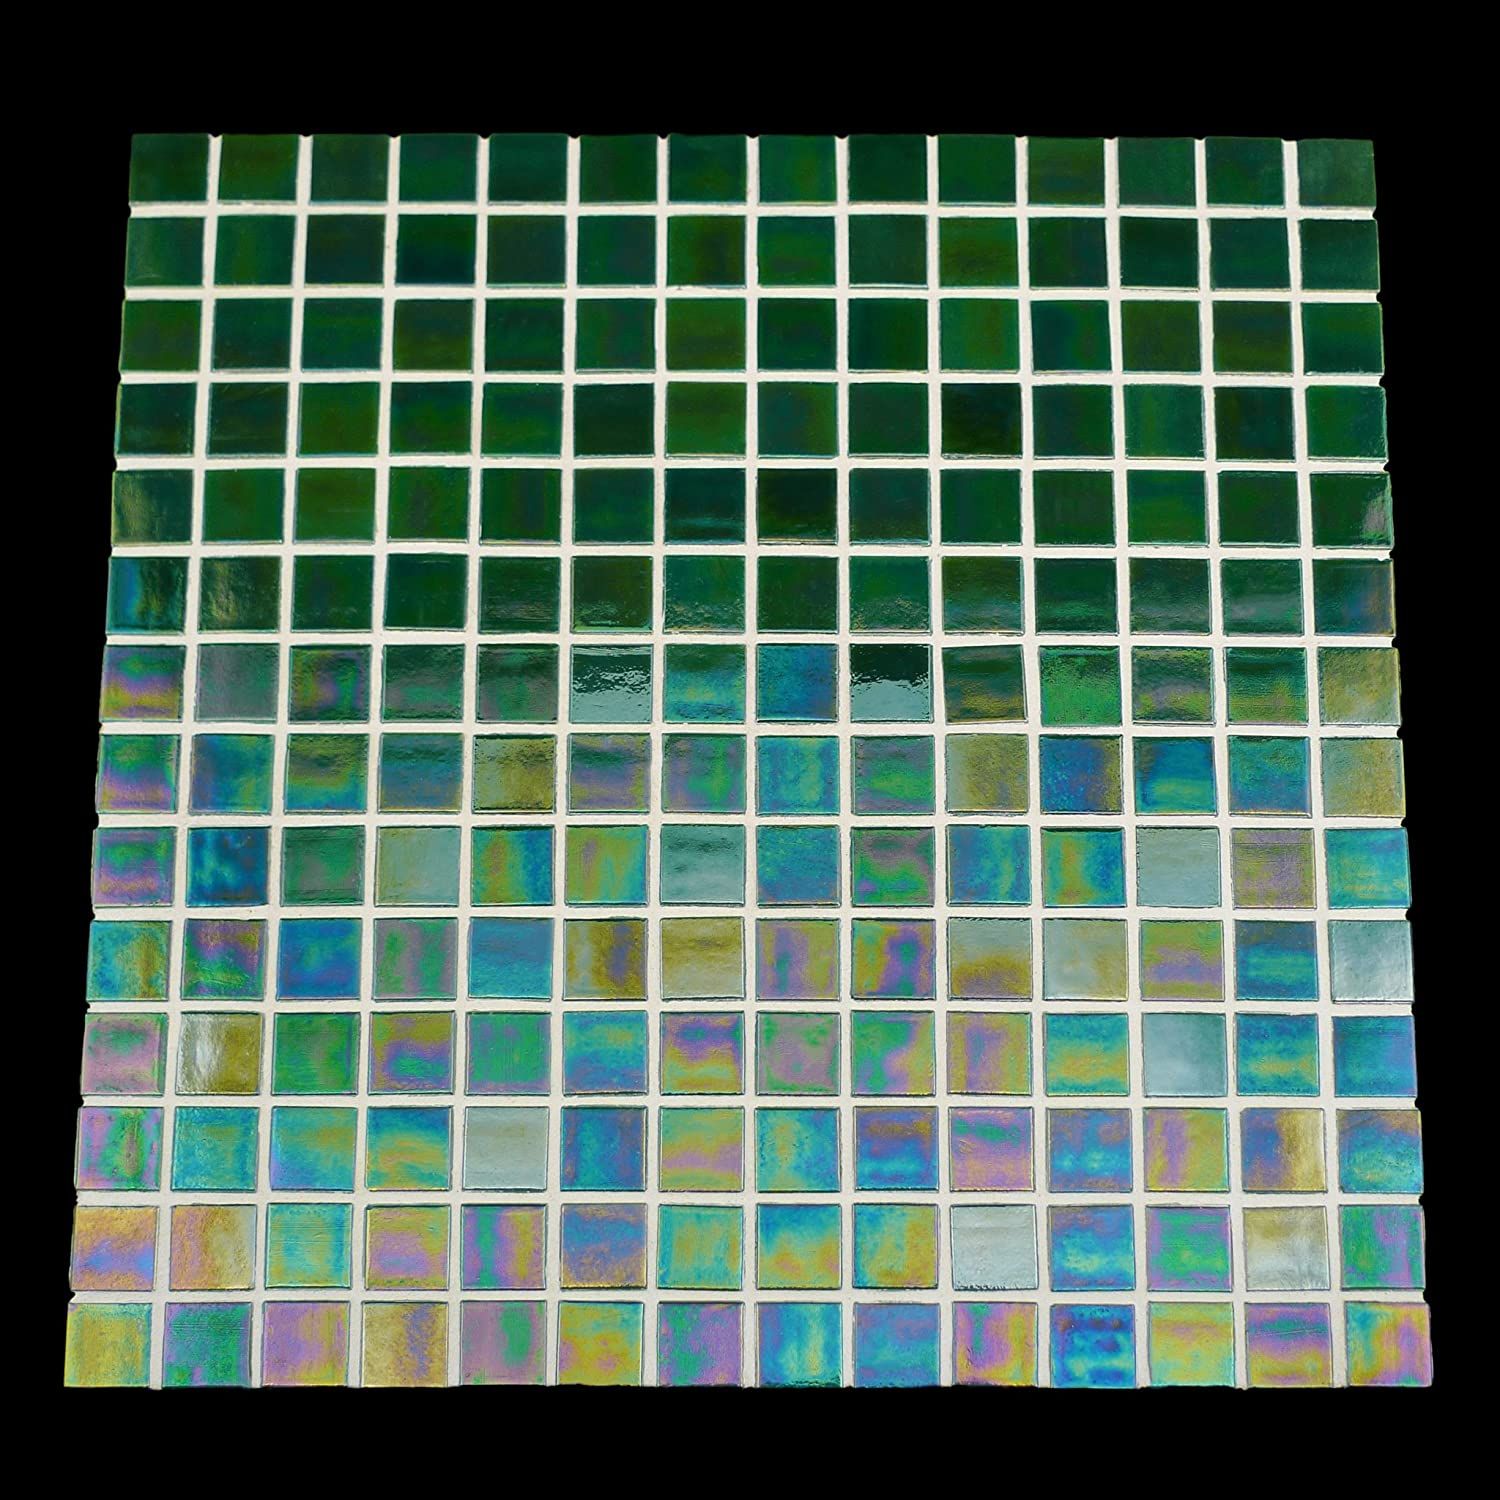 URBN Contemporary Deep Ocean Blue Iridescent Glass Mosaic Tile for Kitchen and Bath Sample Tile 4-1//3 inches x 4-1//3 inches, 0.13 SQ FT